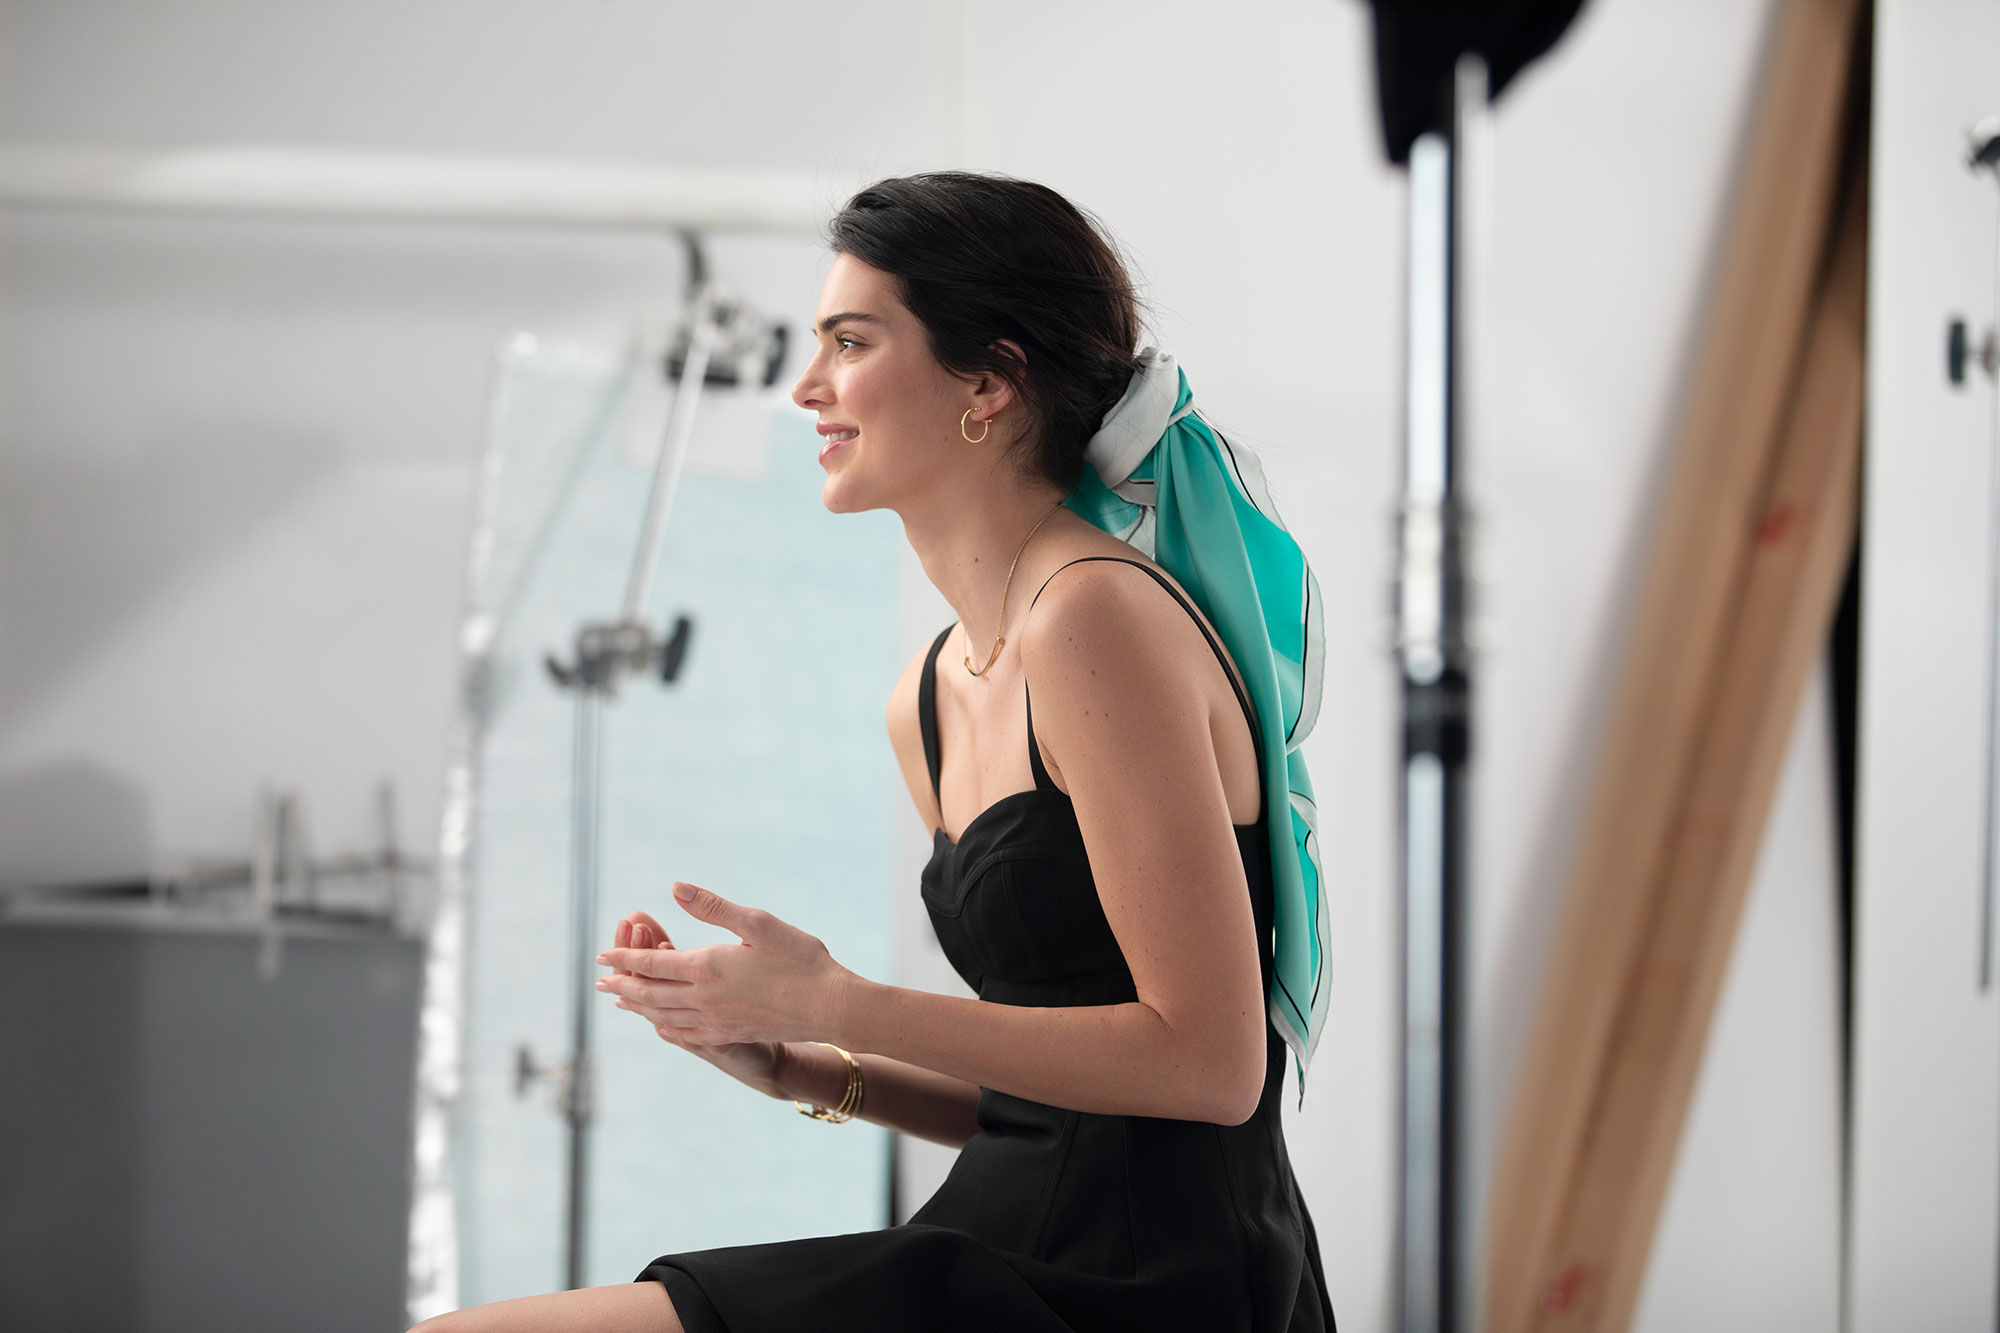 Kendall Jenner Tiffany & Co. Spring Campaign Diamonds - It's not the jewels that we envy in this profile snap, it's that stunning silk hair scarf!